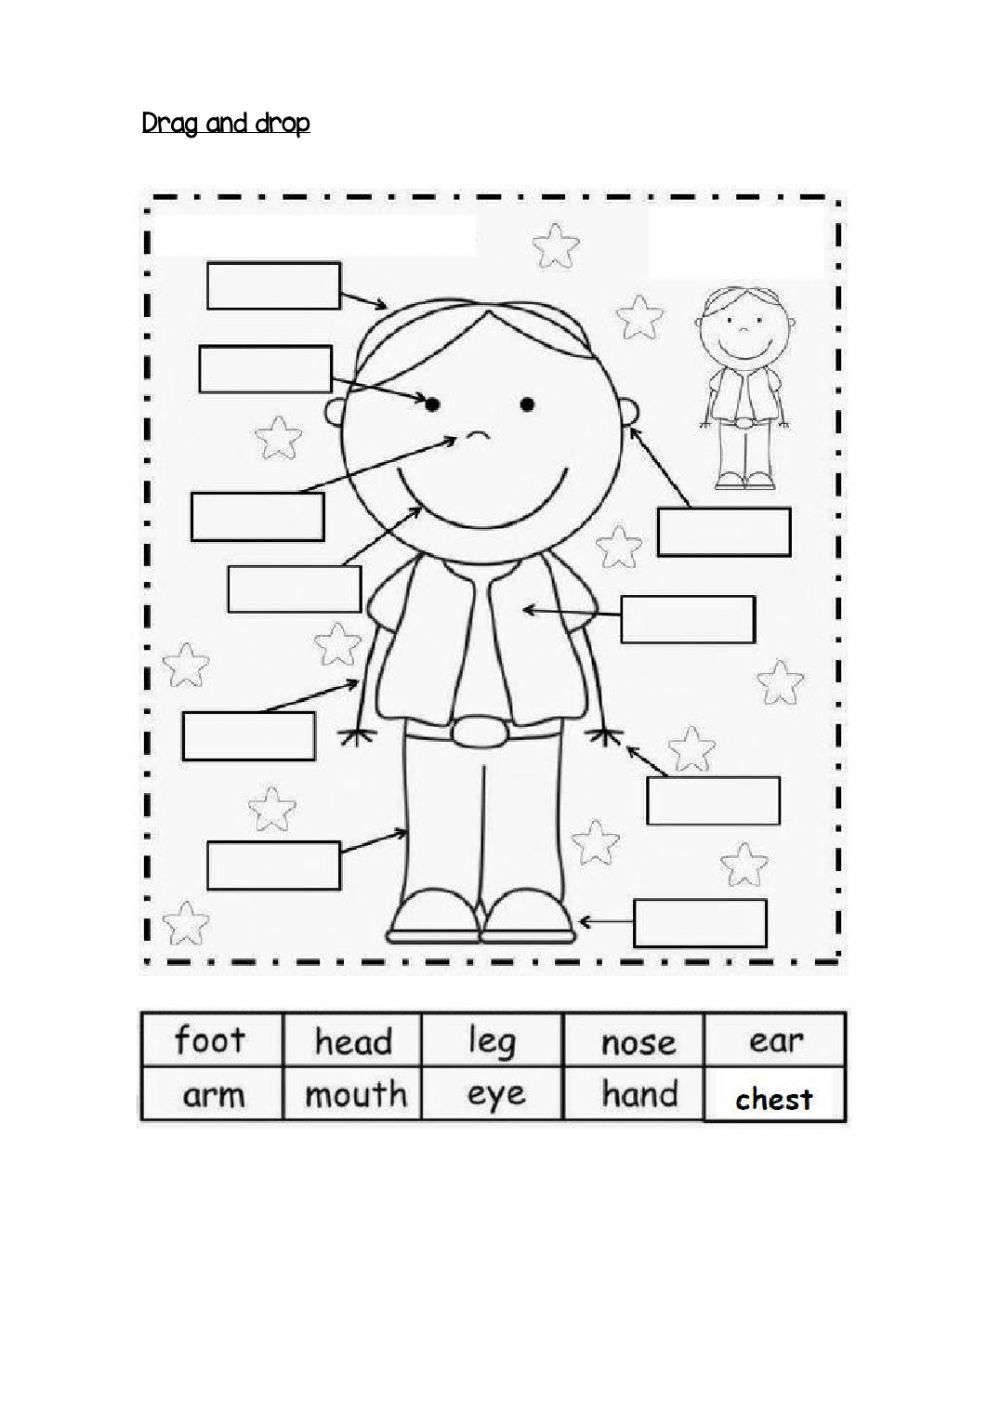 hight resolution of Body Parts online exercise for 1 st grade